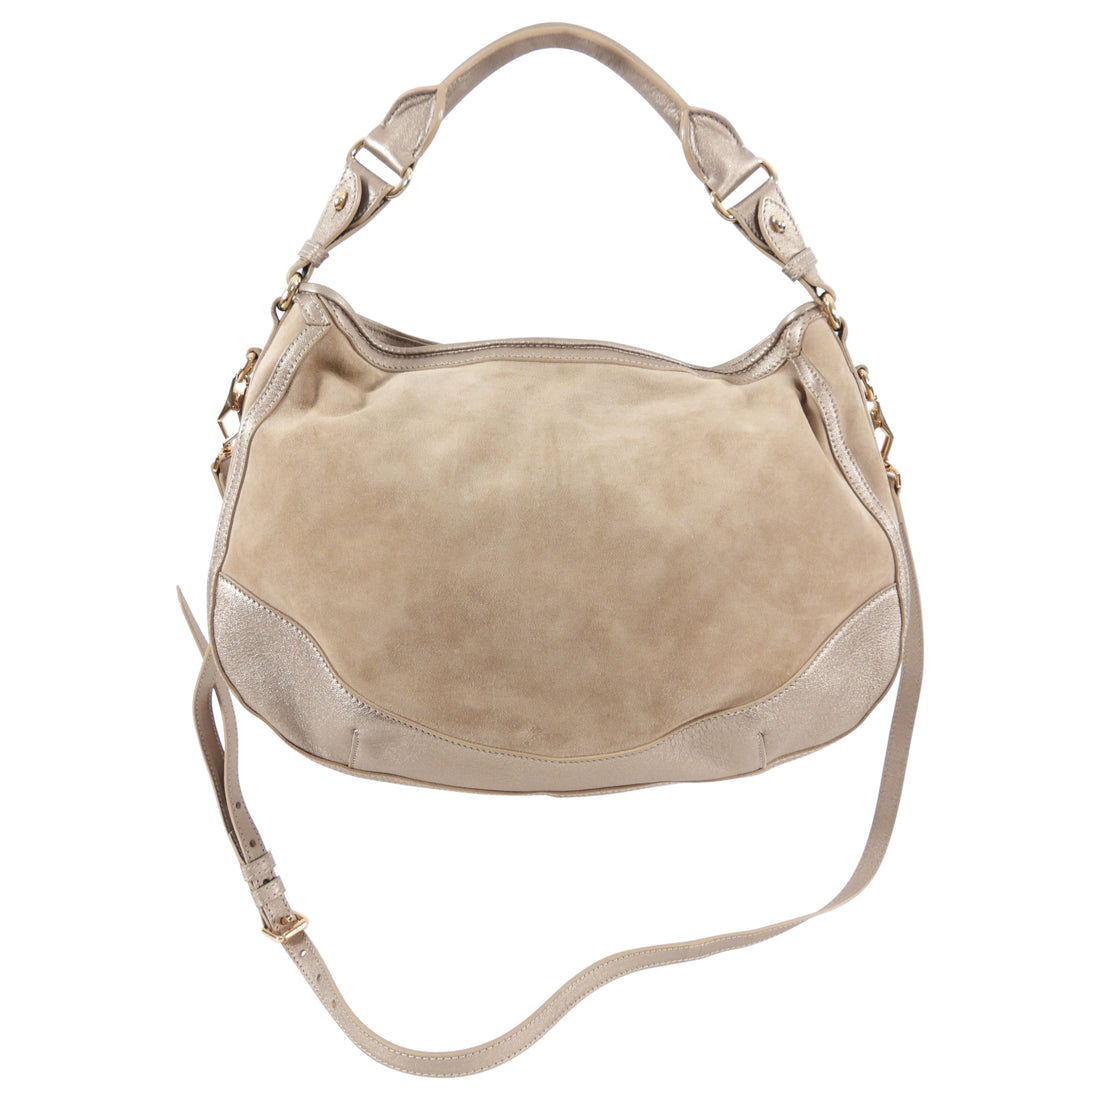 Burberry Light Beige Suede and Leather Hobo Bag